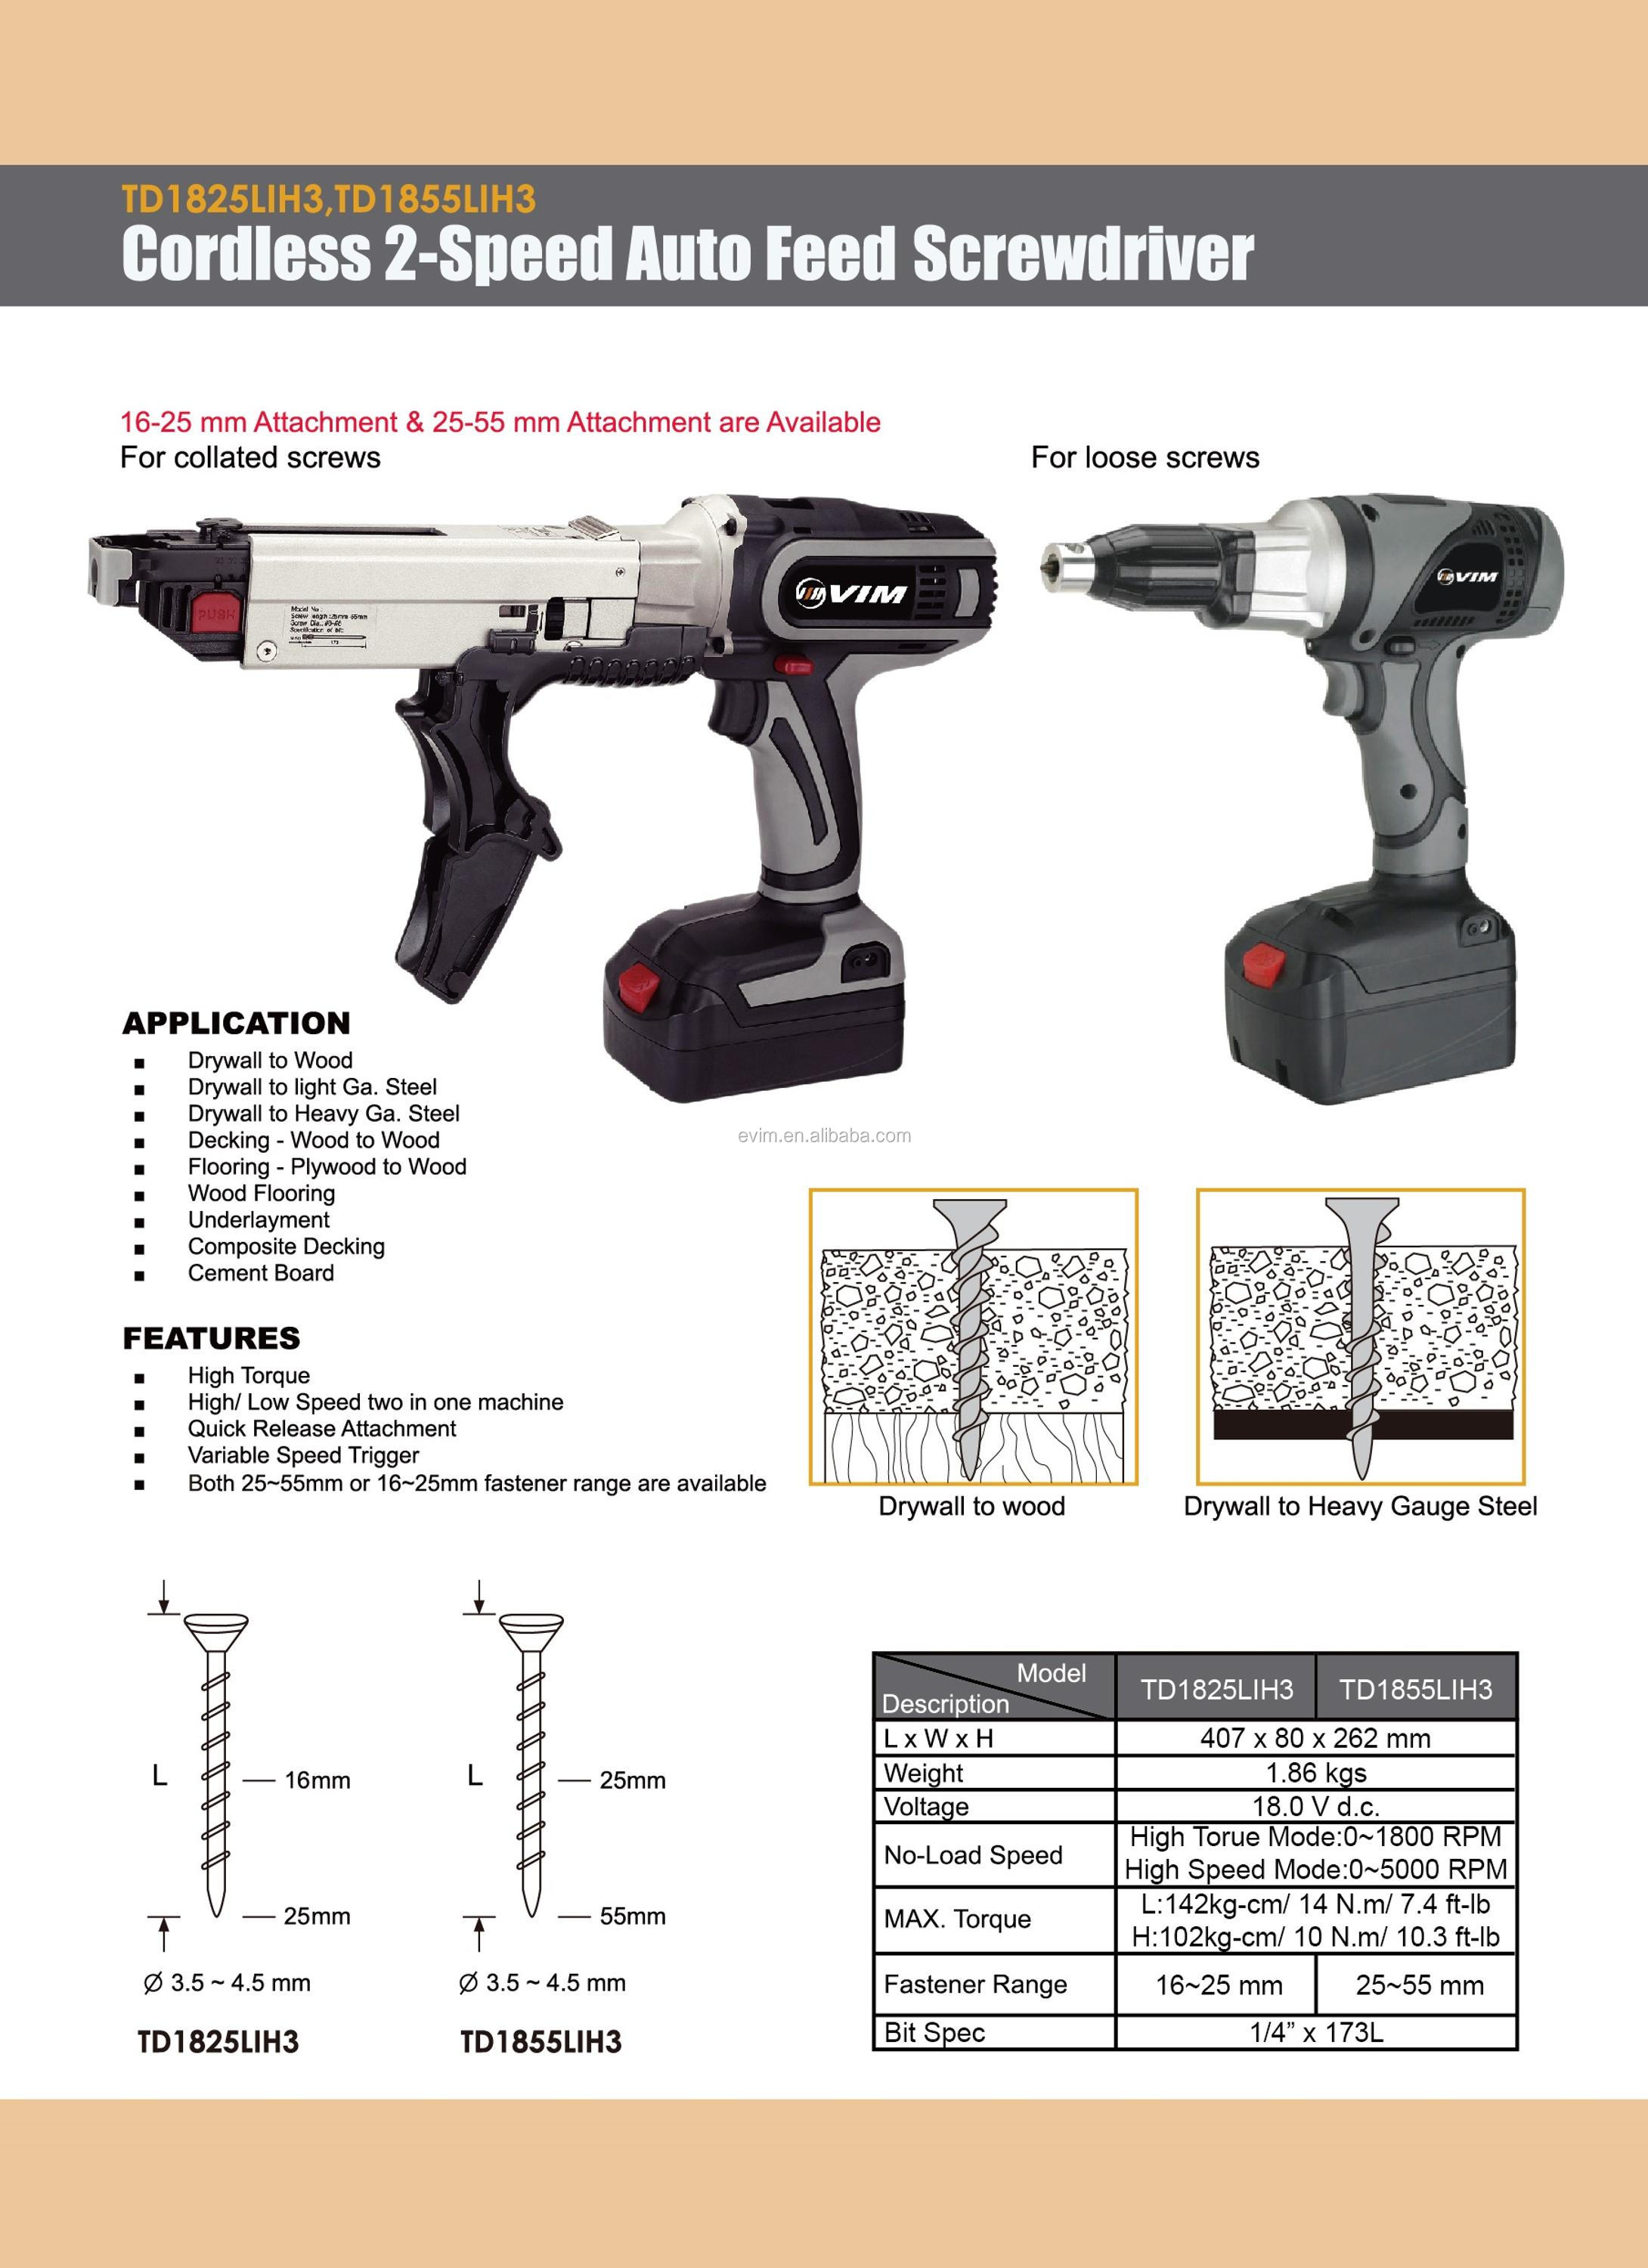 TD1855LIH3 Cordless 2-Speed Autofeed / Drywall Screwdriver